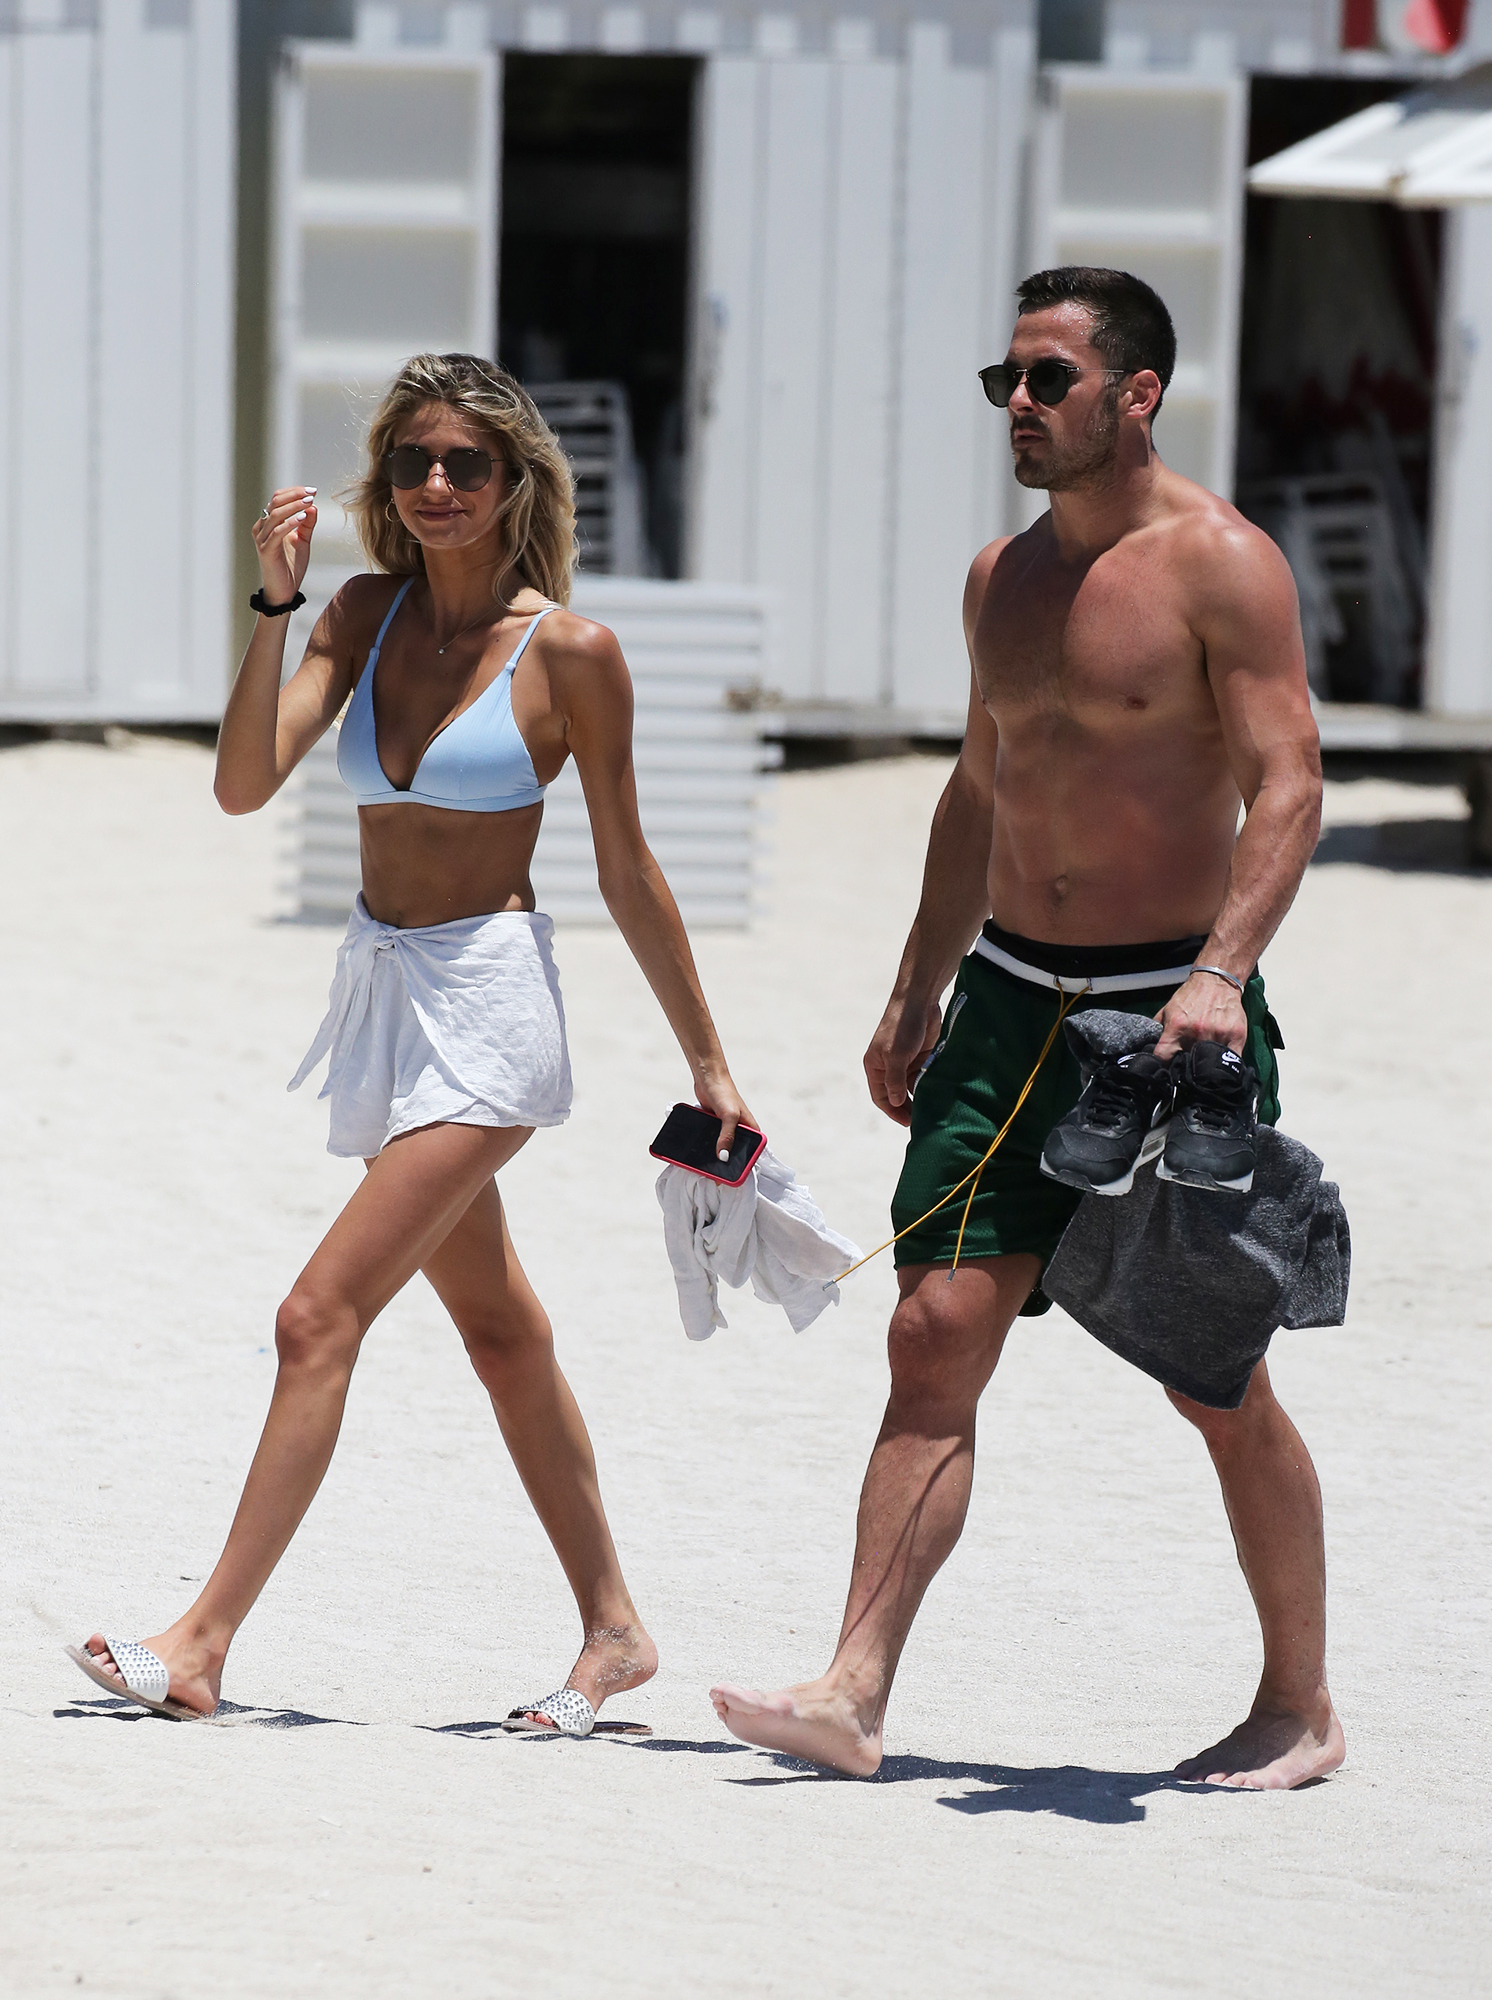 Danny Amendola With Mystery Blonde as Olivia Culpo Parties With Zedd - The duo seemed to charm each other during their beach day.